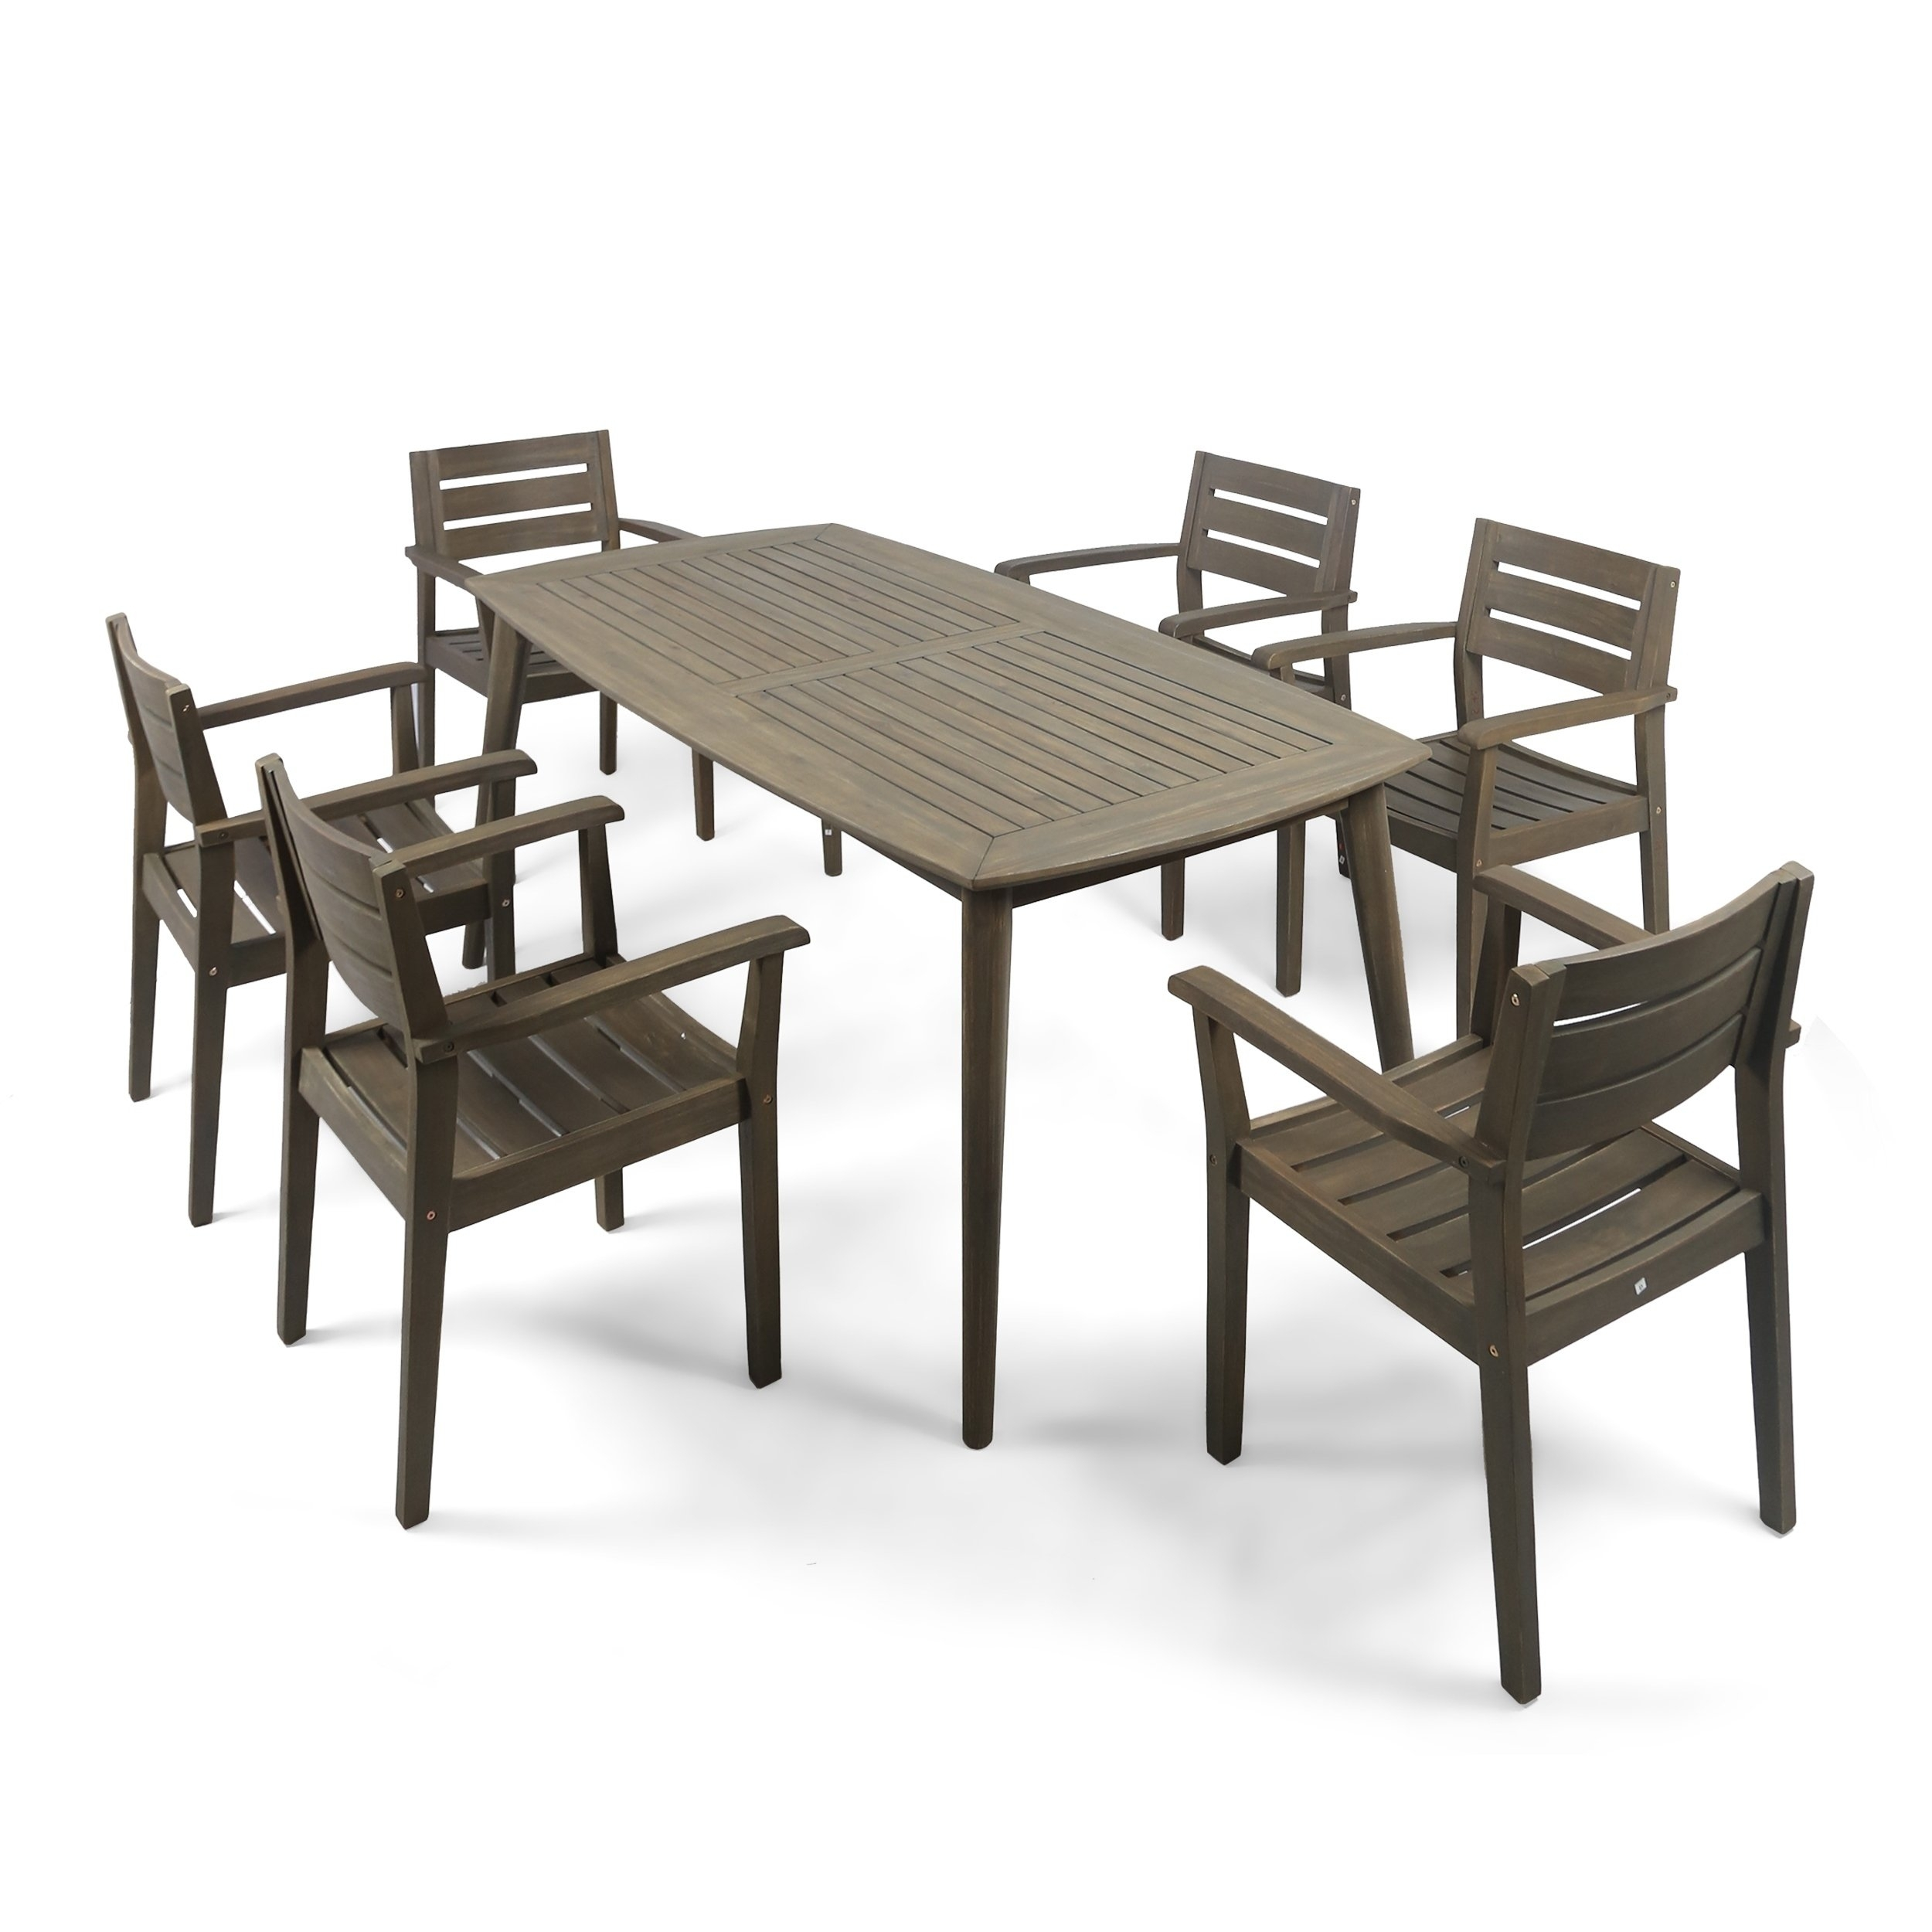 Shop Stamford Outdoor 7 Piece Rectangle Acacia Wood Dining Set Regarding Most Up To Date Laurent 7 Piece Rectangle Dining Sets With Wood And Host Chairs (Image 19 of 20)